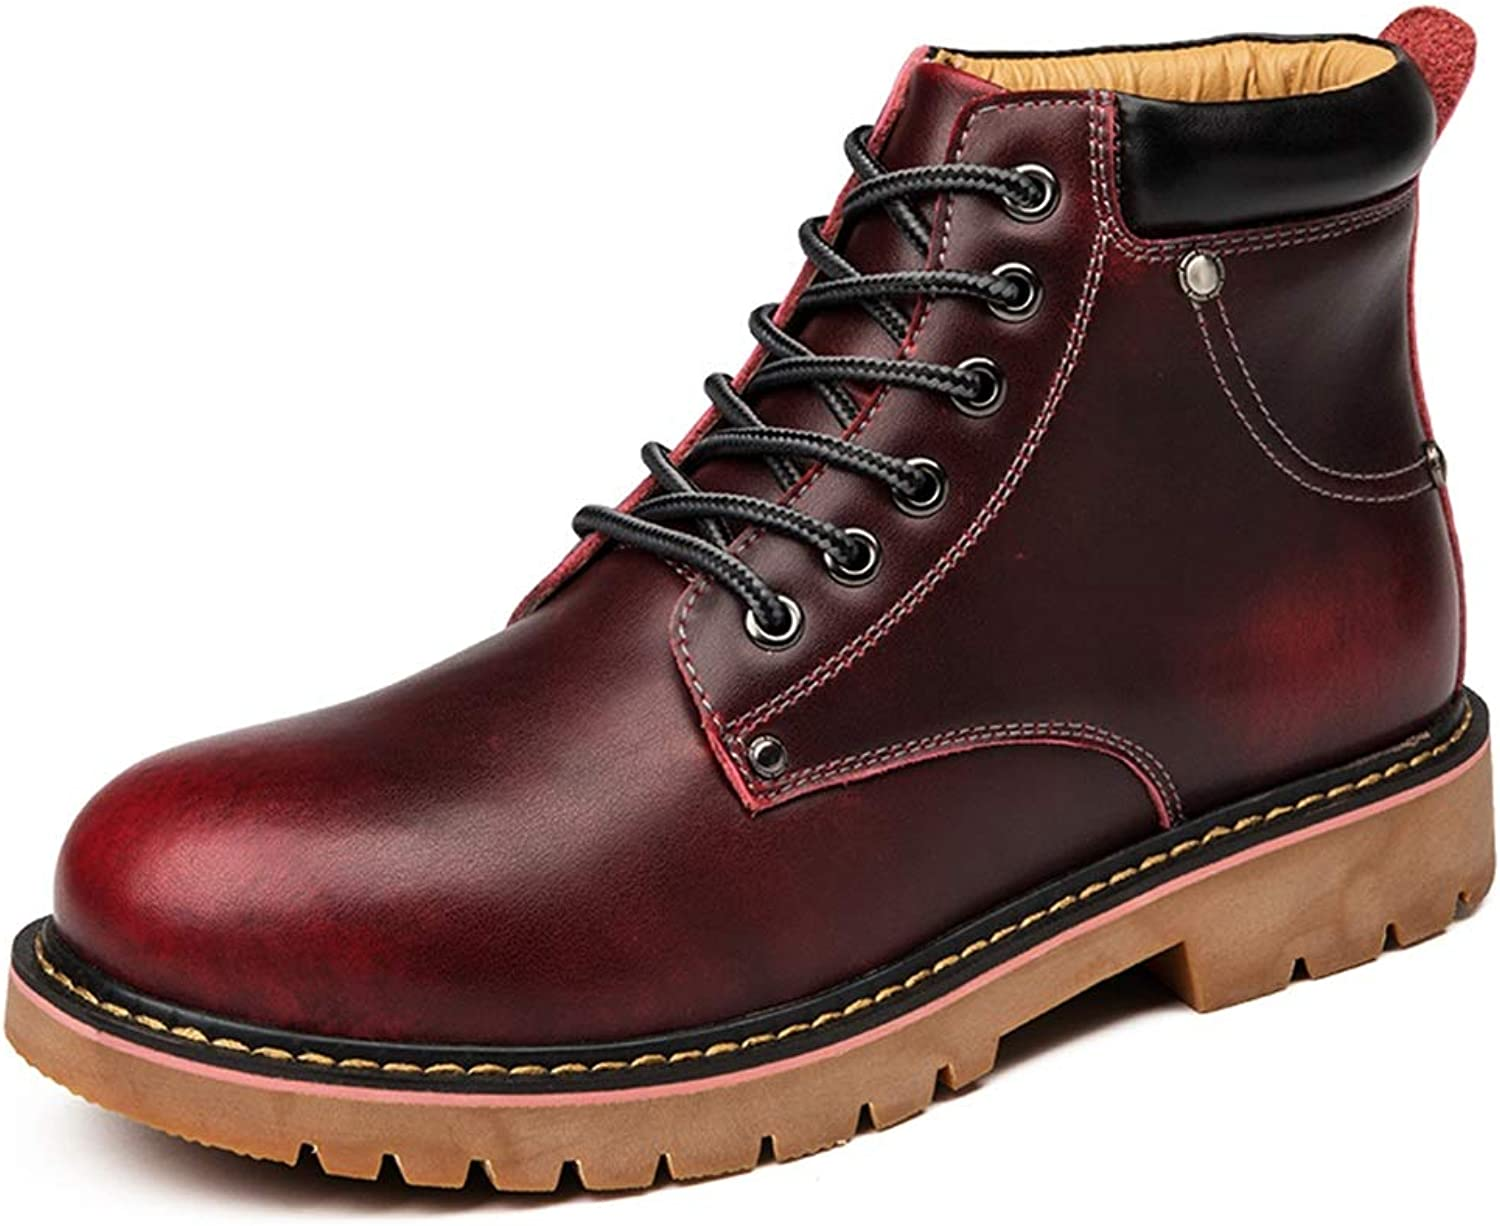 BND-SHOES ,Men's Fashion Boots Casual PU Leather High-top Outdoor Outsole Leisure boots Durable,Stand Wear and Tear (color   Wine Red, Size   8 UK)